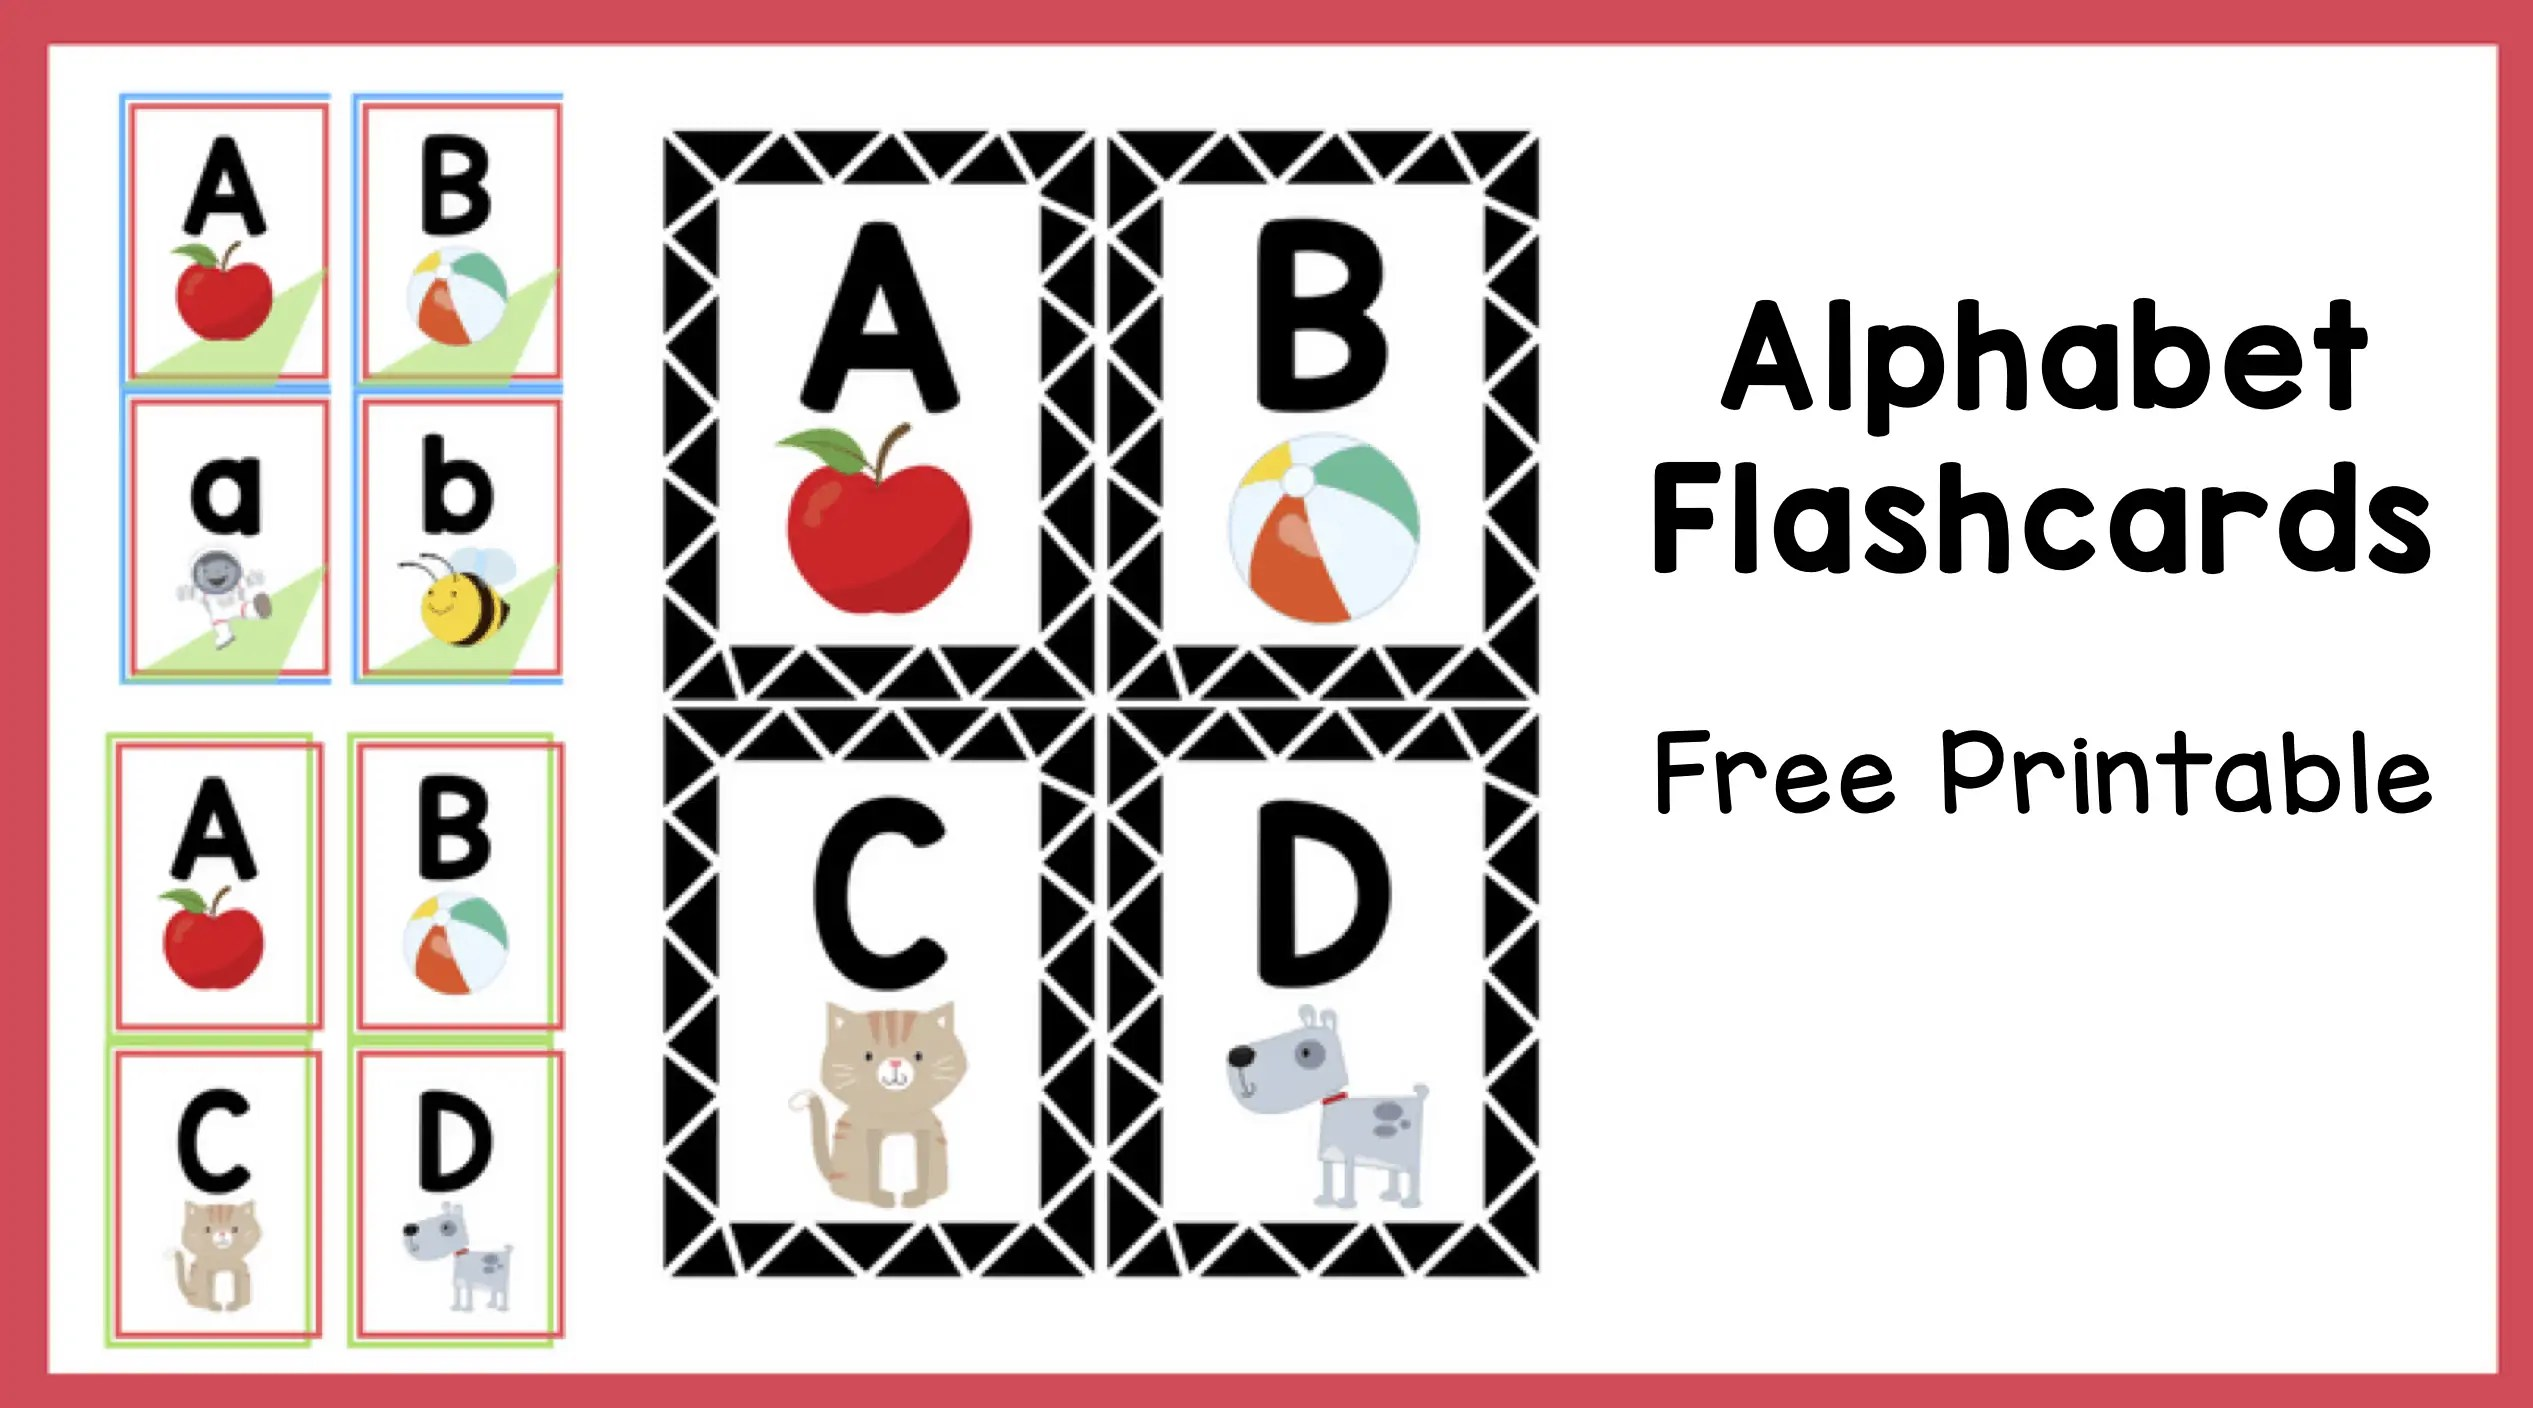 photograph about Abc Flash Cards Printable named Alphabet Flashcards Totally free Printable - The Education Aunt